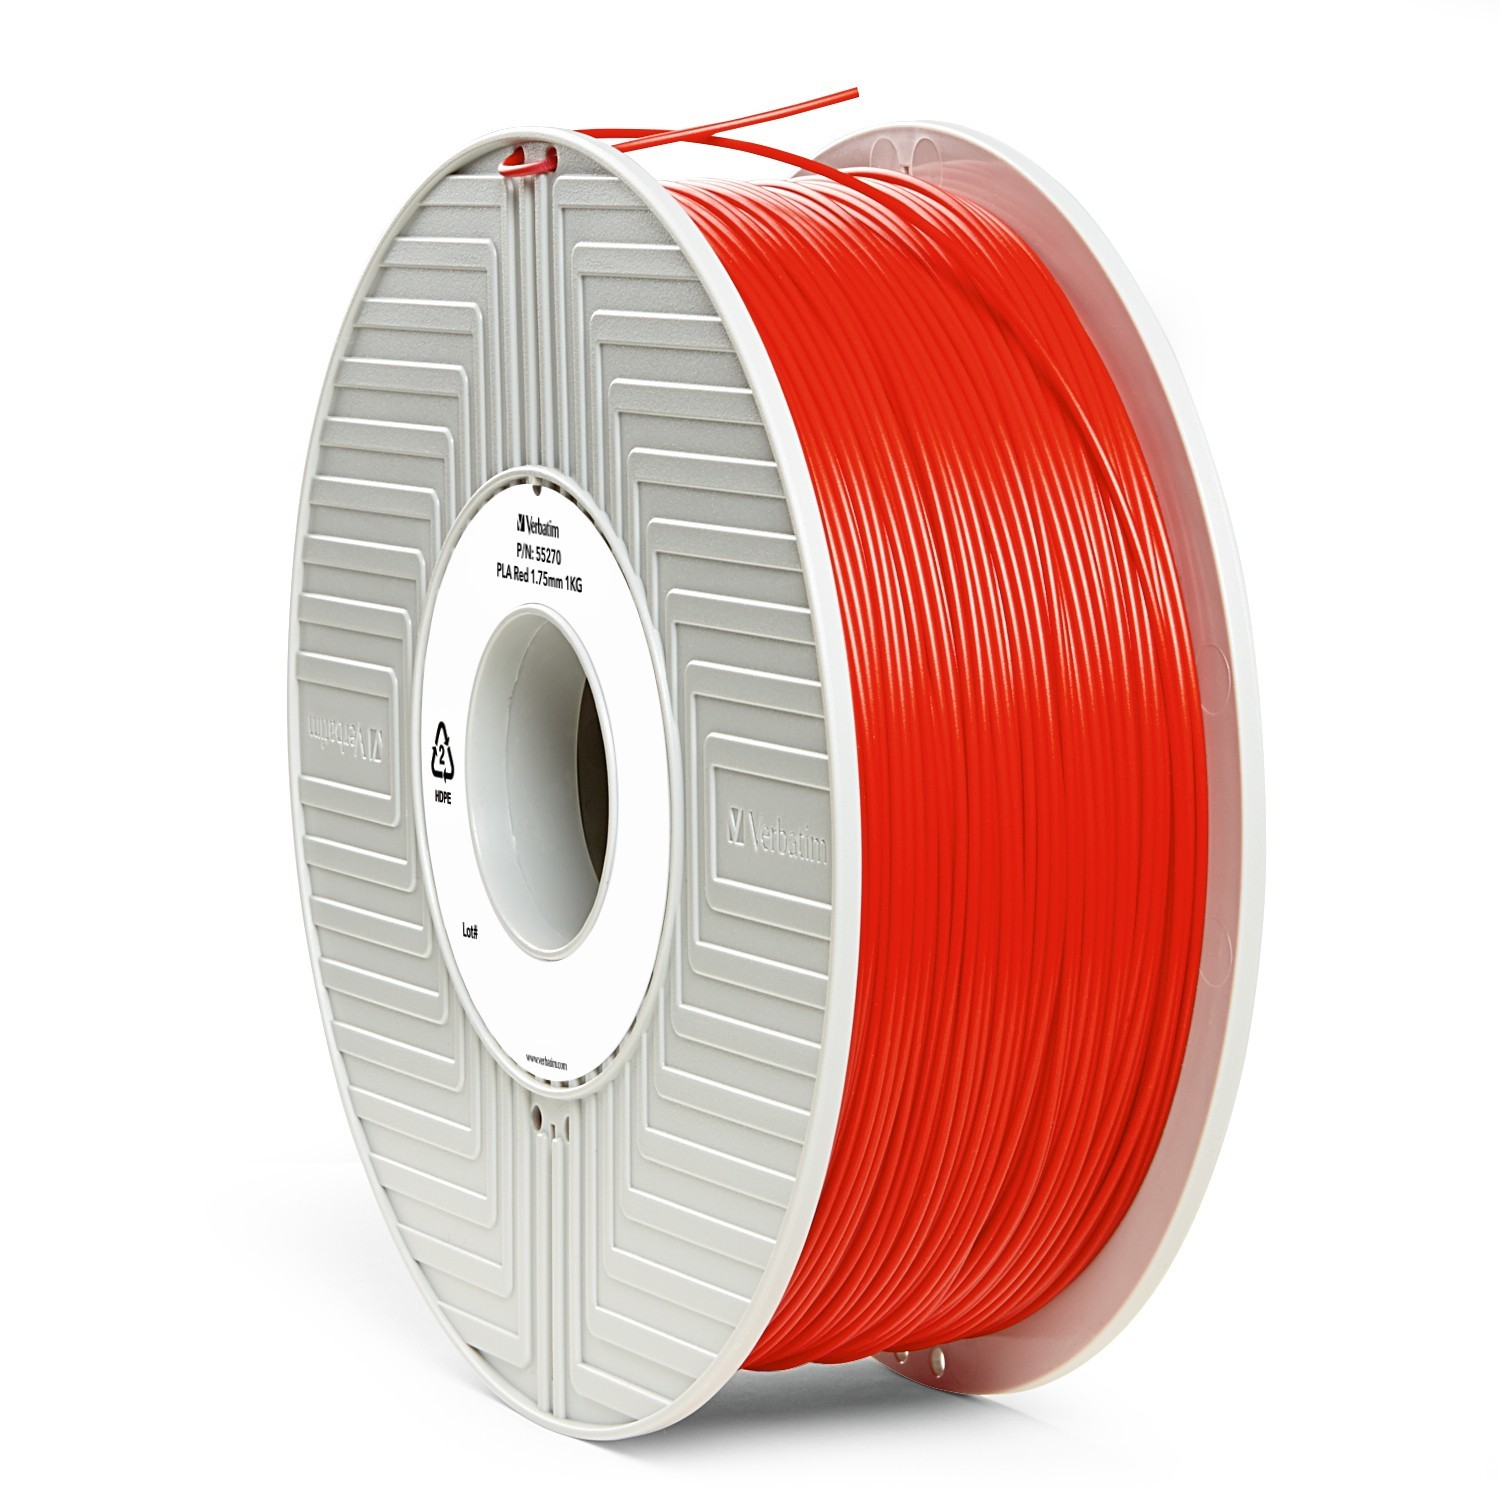 Verbatim 3D Printer PLA 1.75mm Filament - 1kg (Red) image